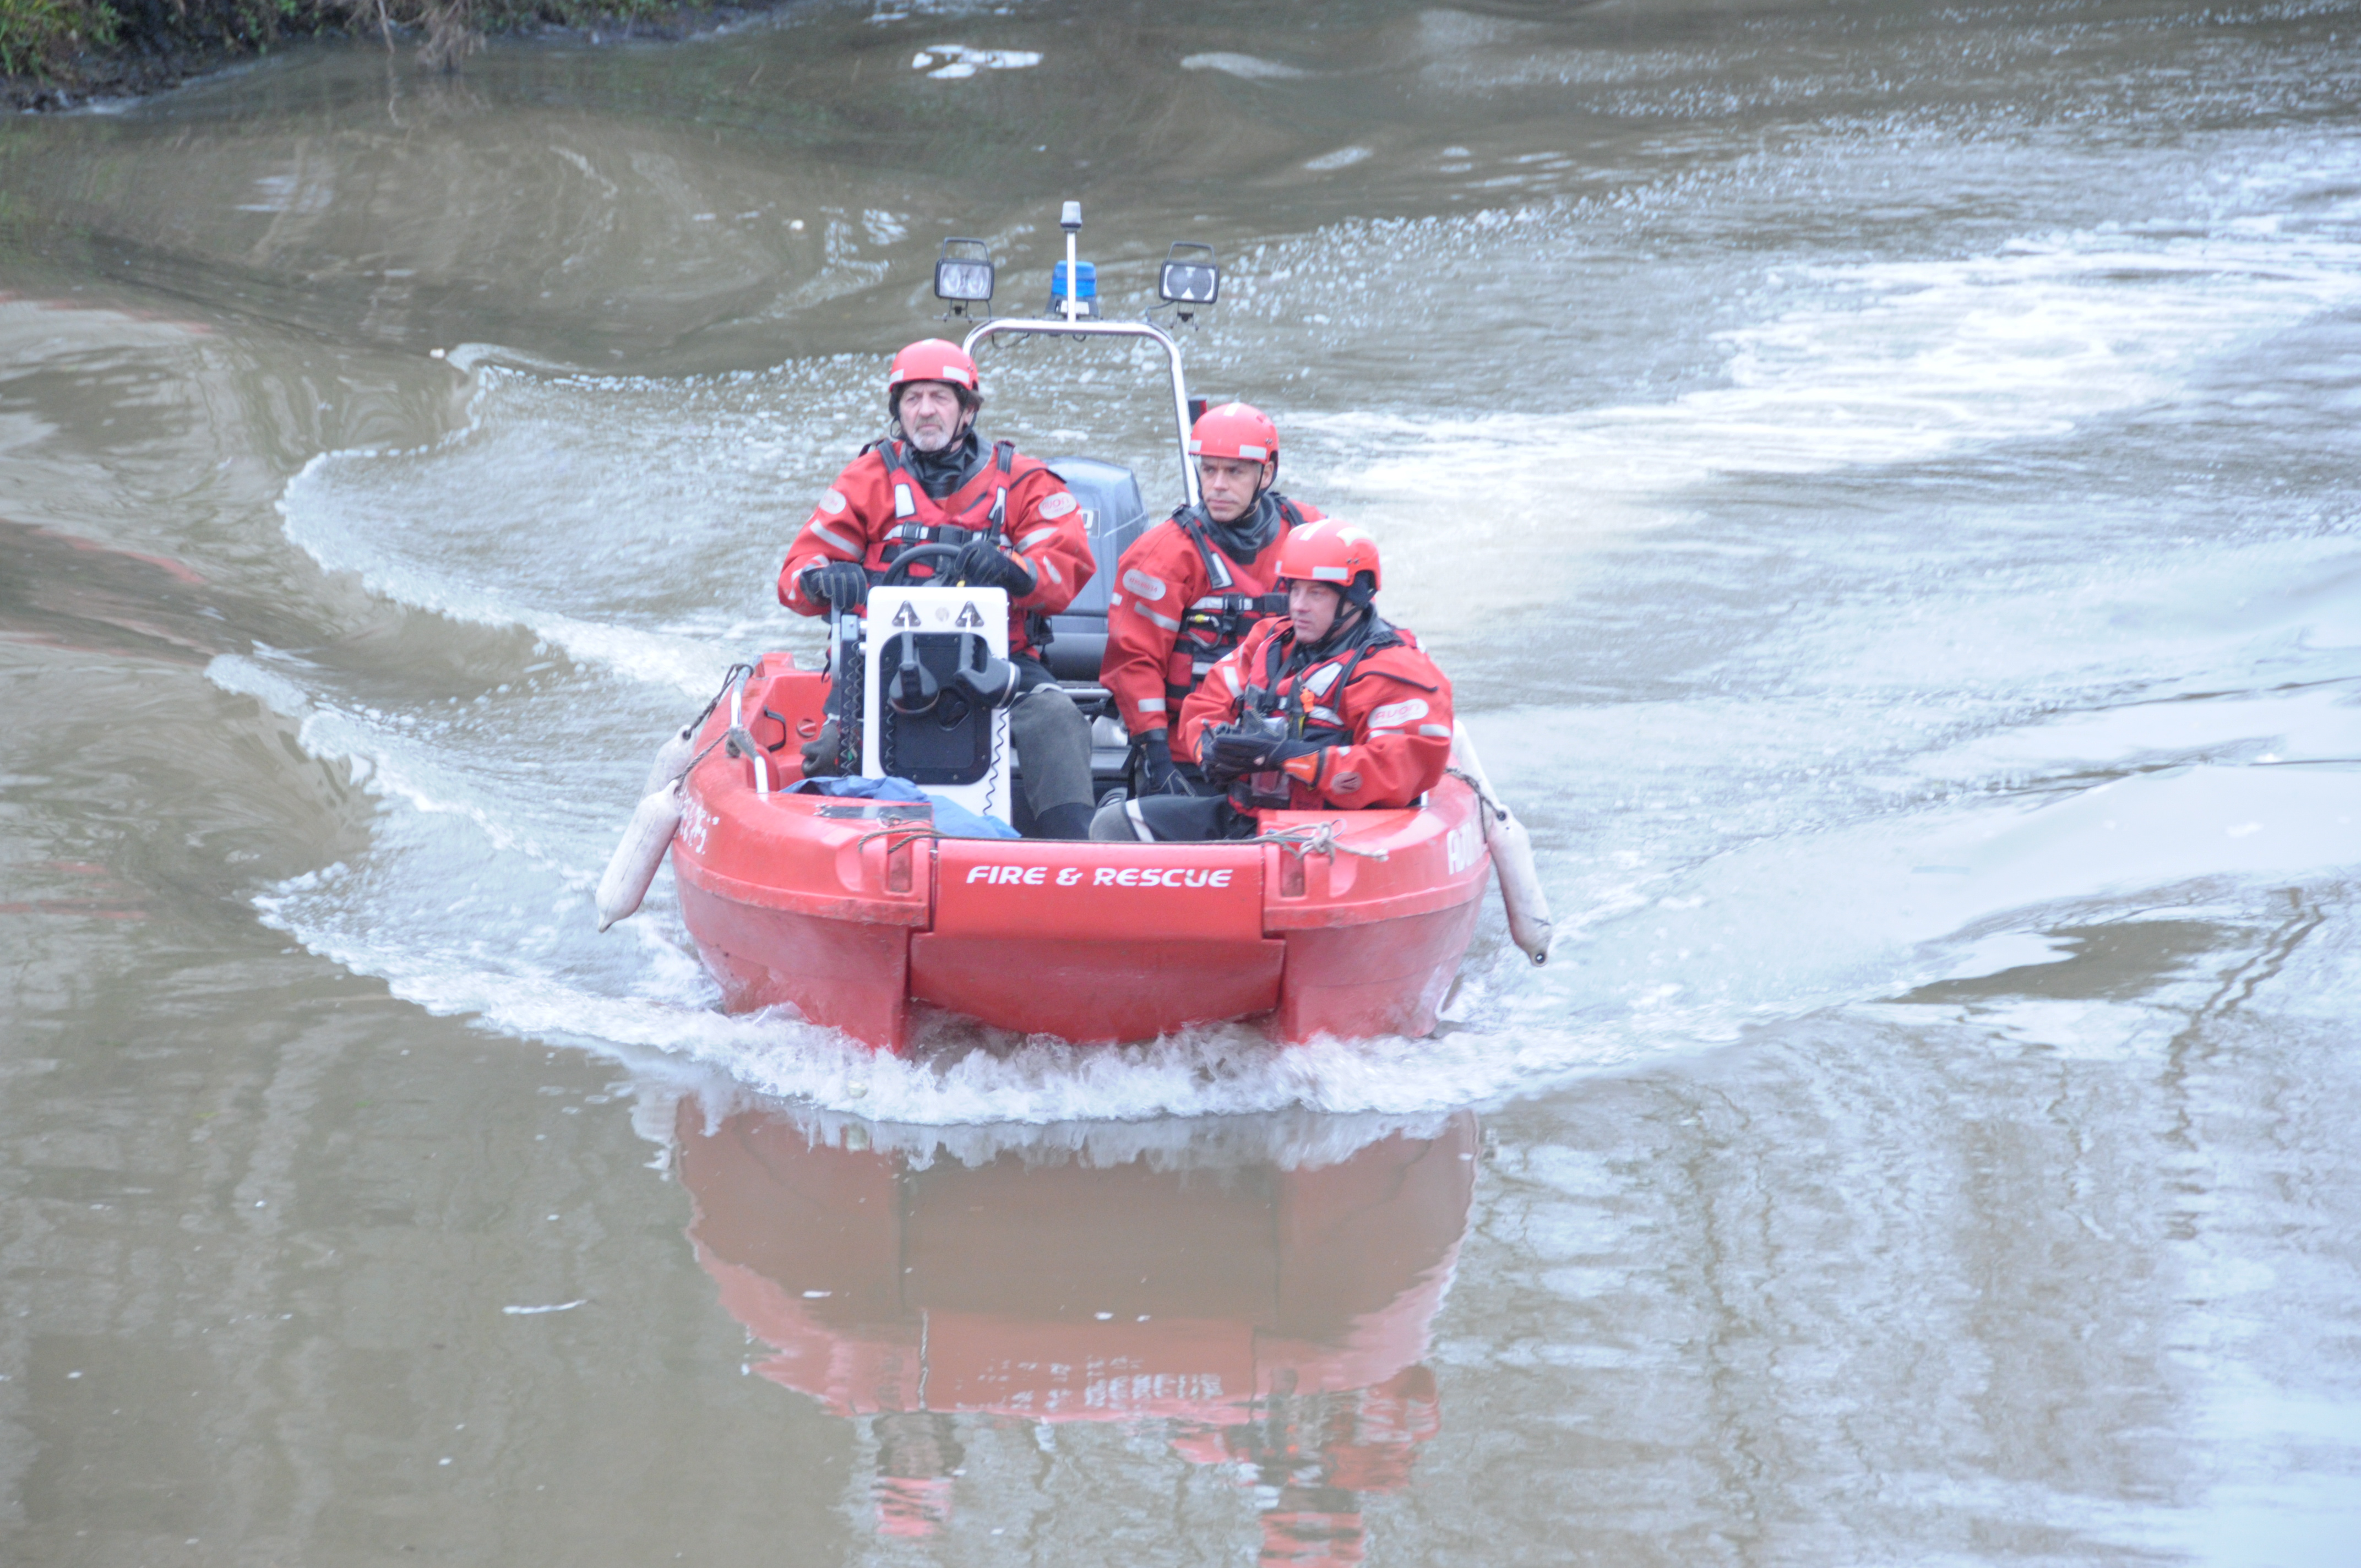 Avon Fire & Rescue Service supports national water safety campaign